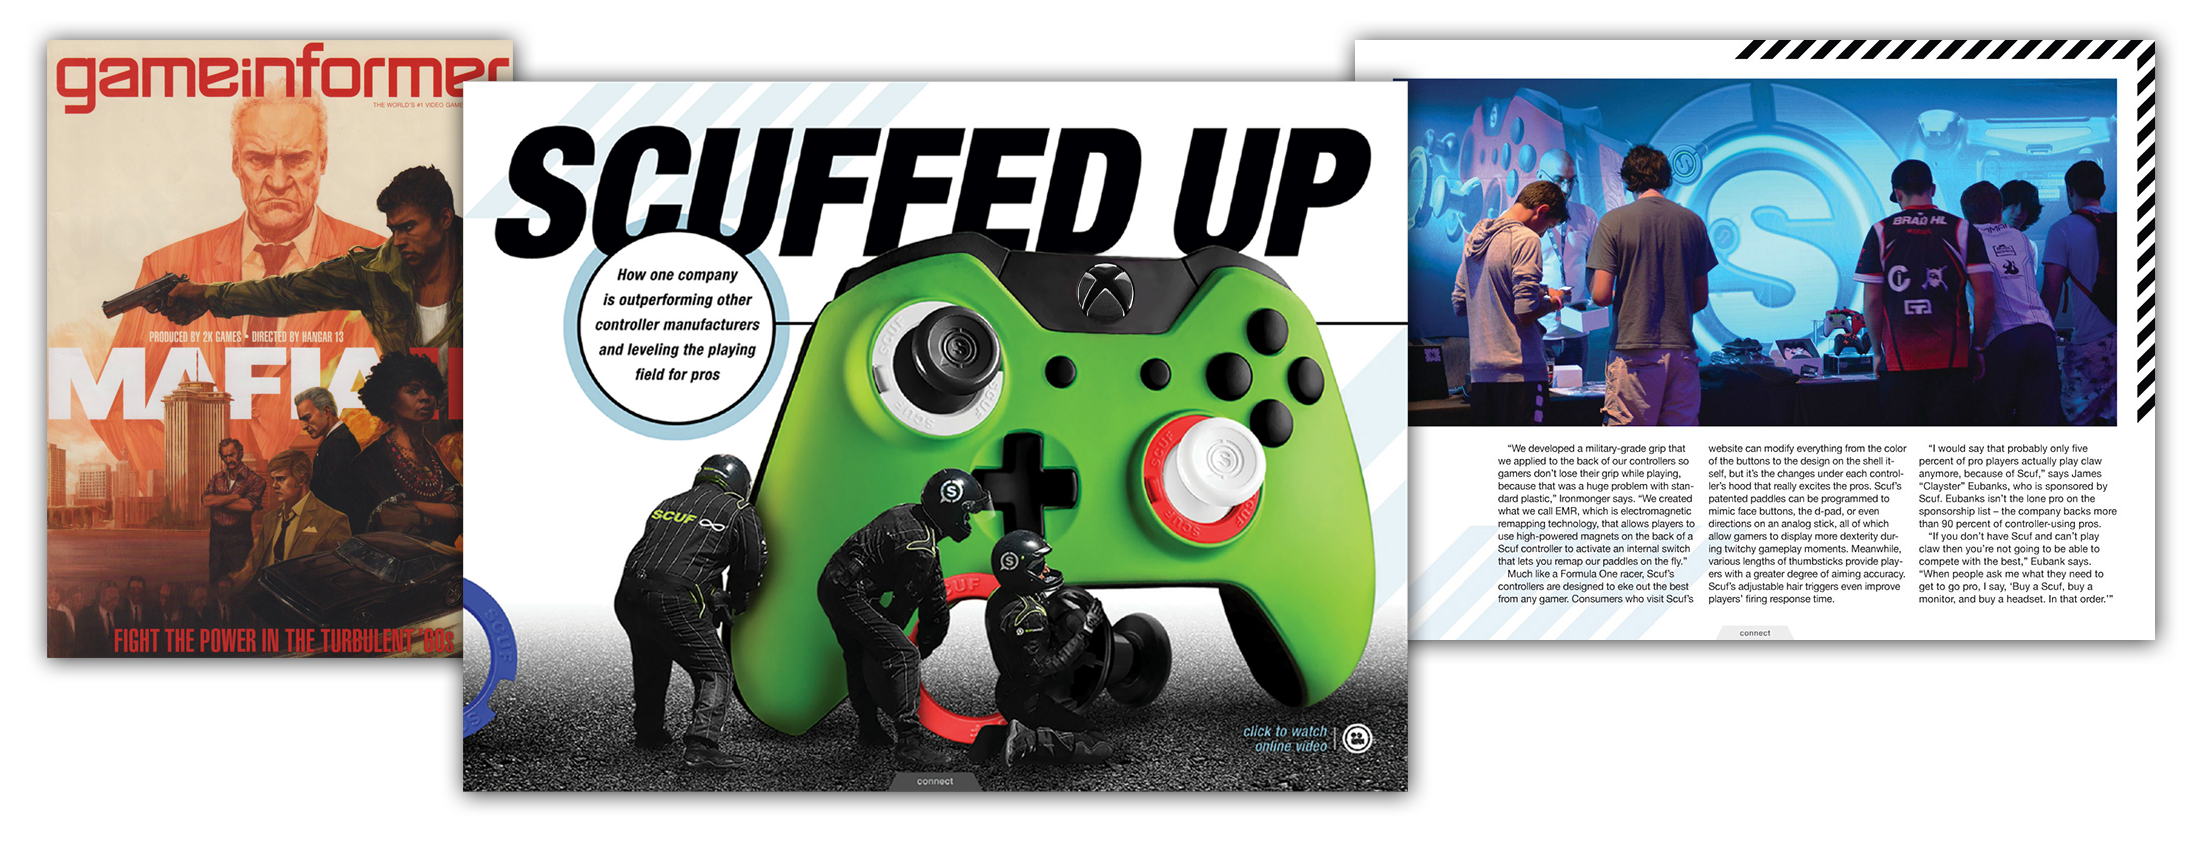 scuf-game-informer-article1